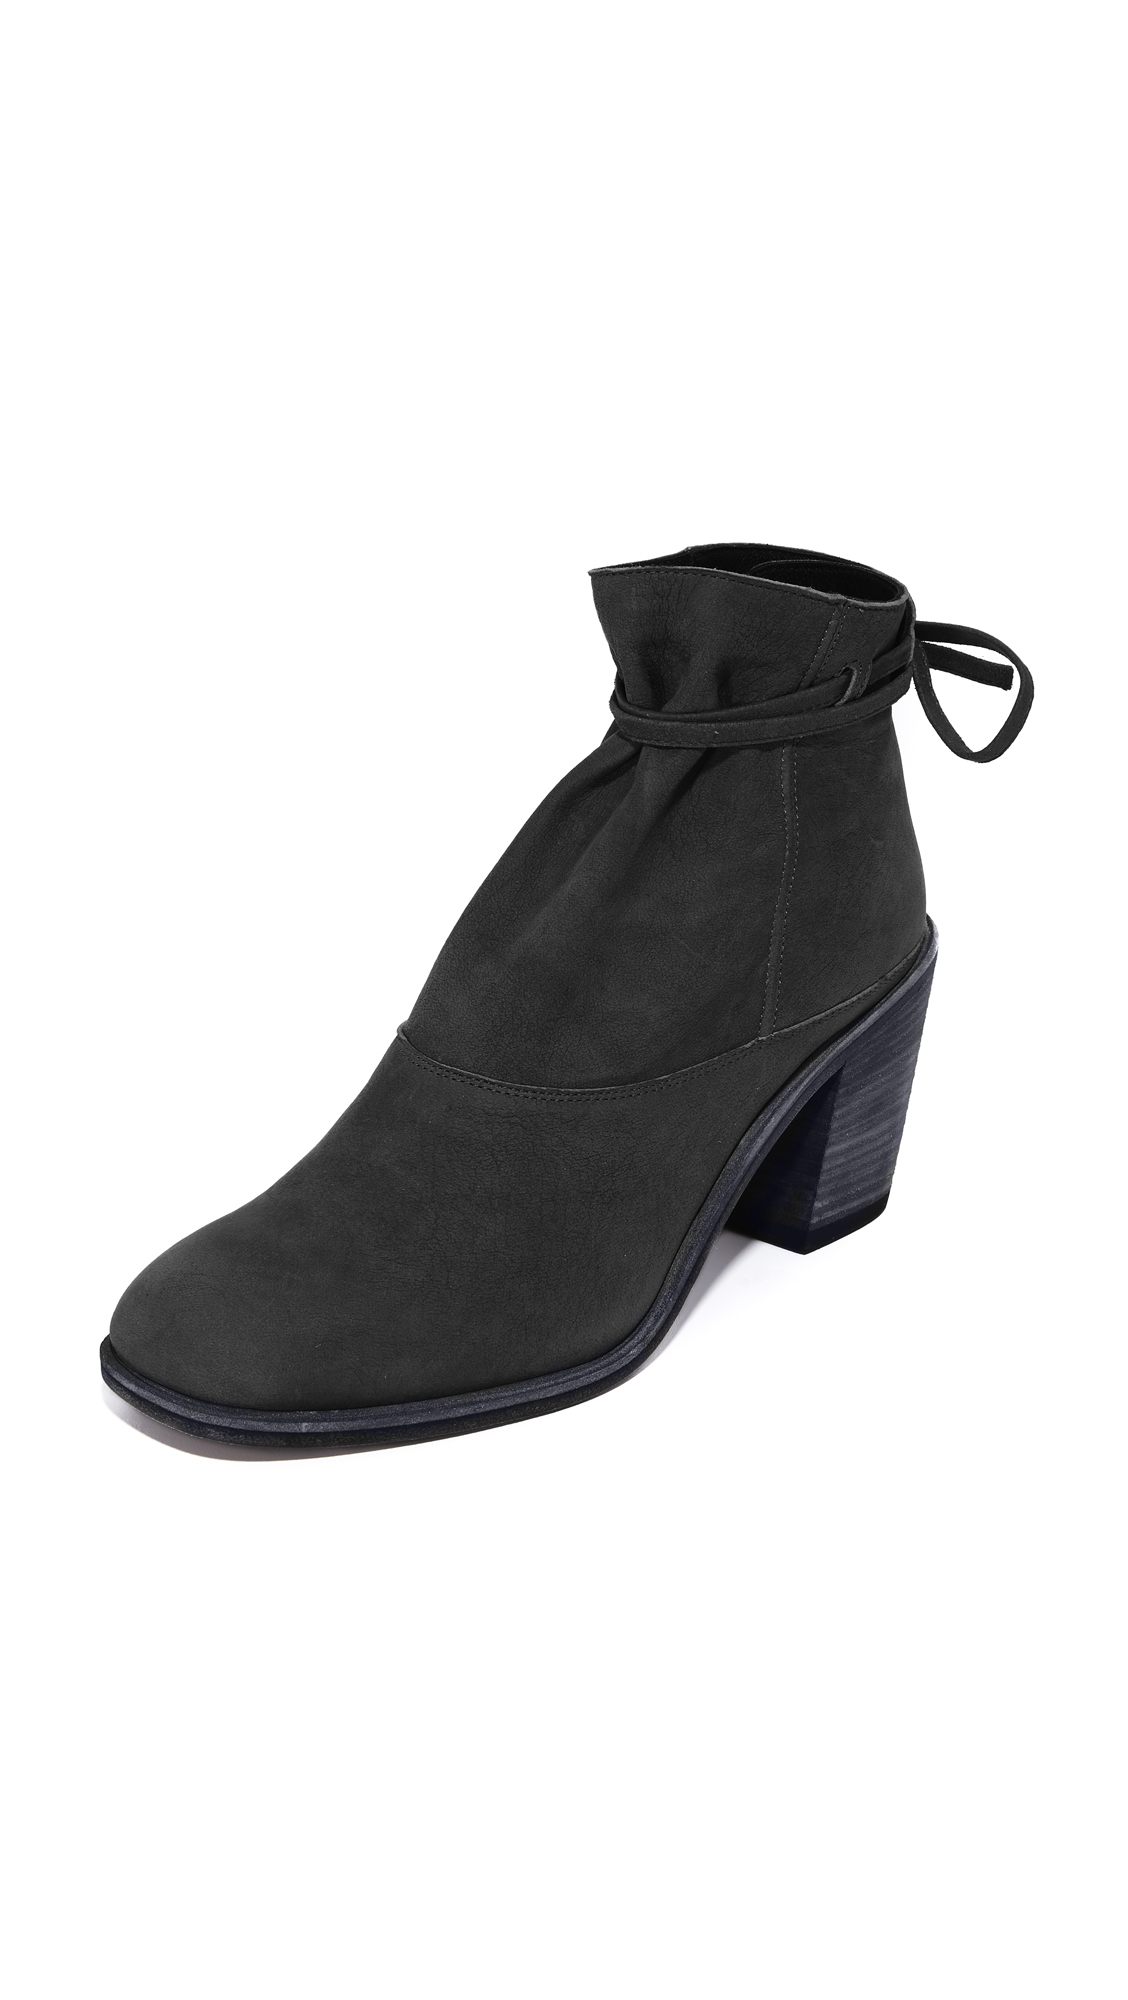 Ld Tuttle The Vow Booties - Black